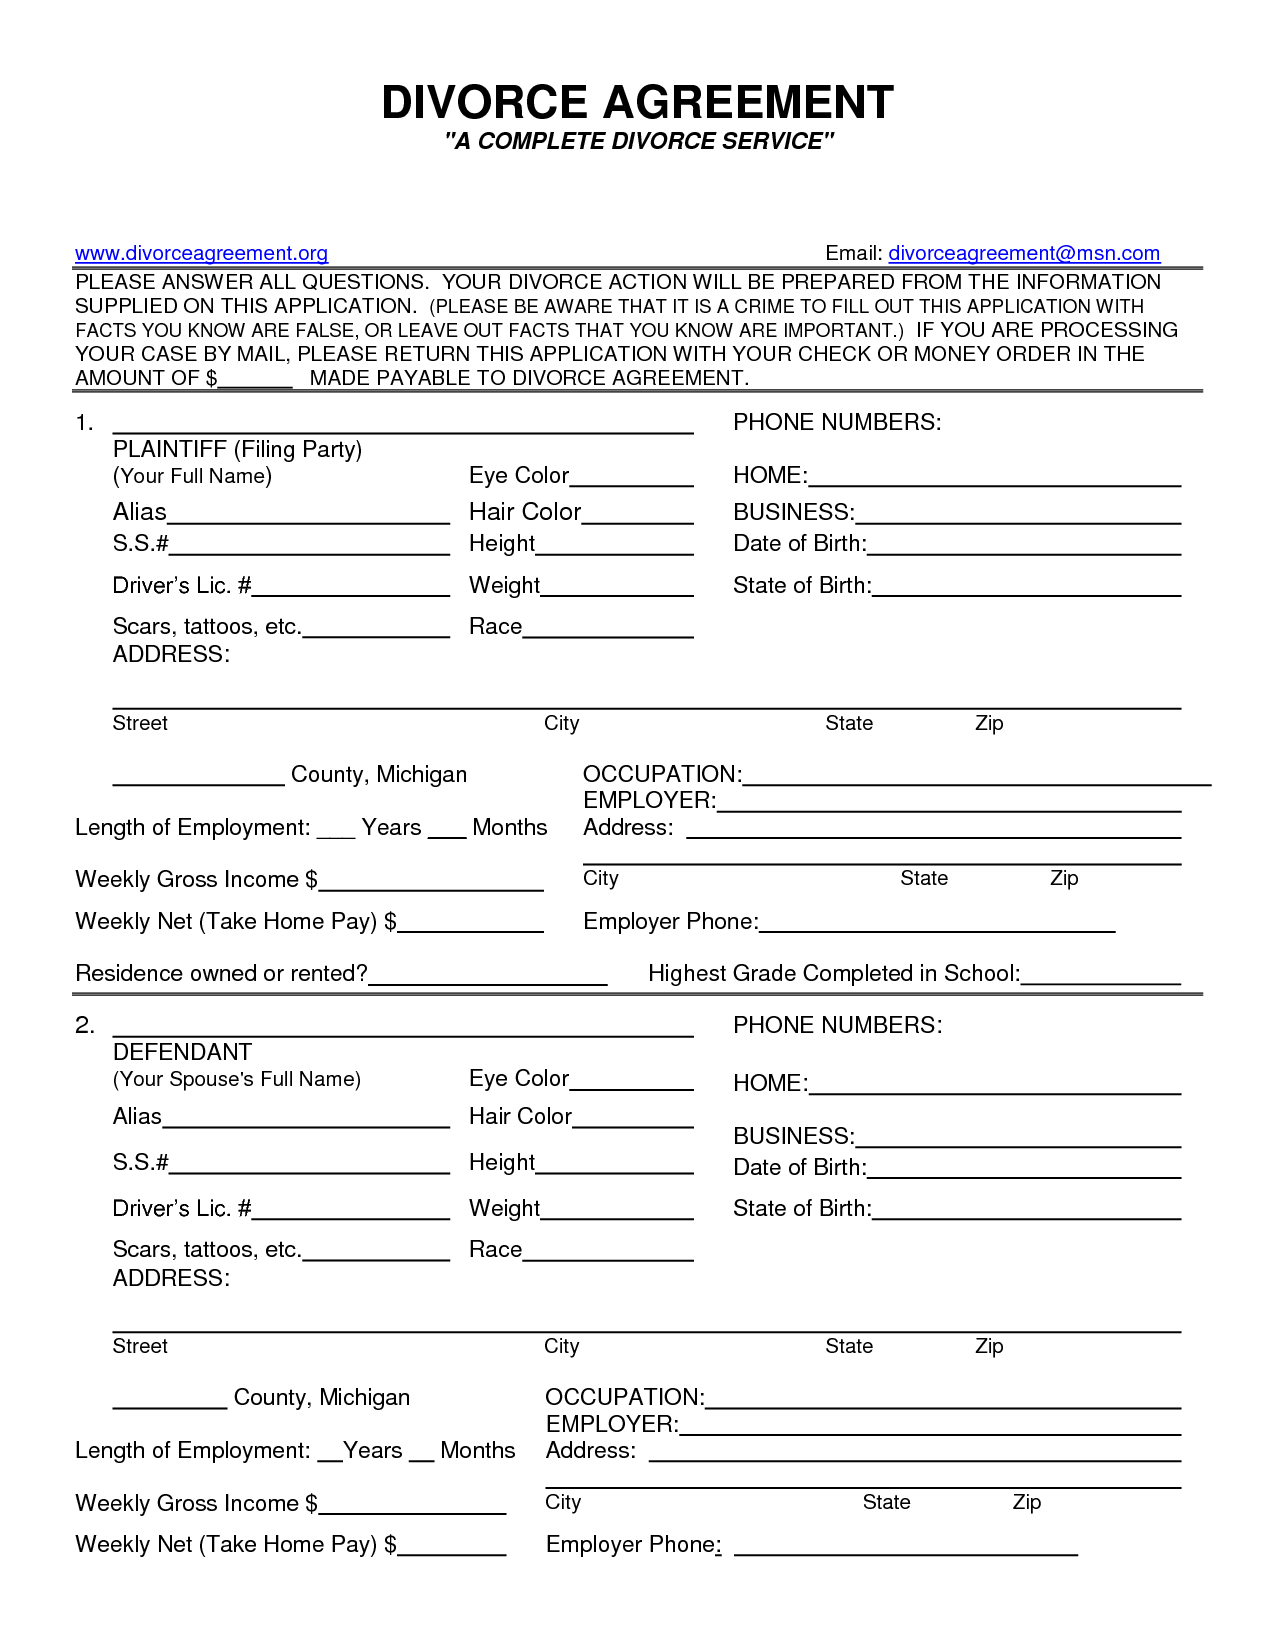 Fake Divorce Papers Pdf Worksheet to Print – Printable Fake Divorce Papers